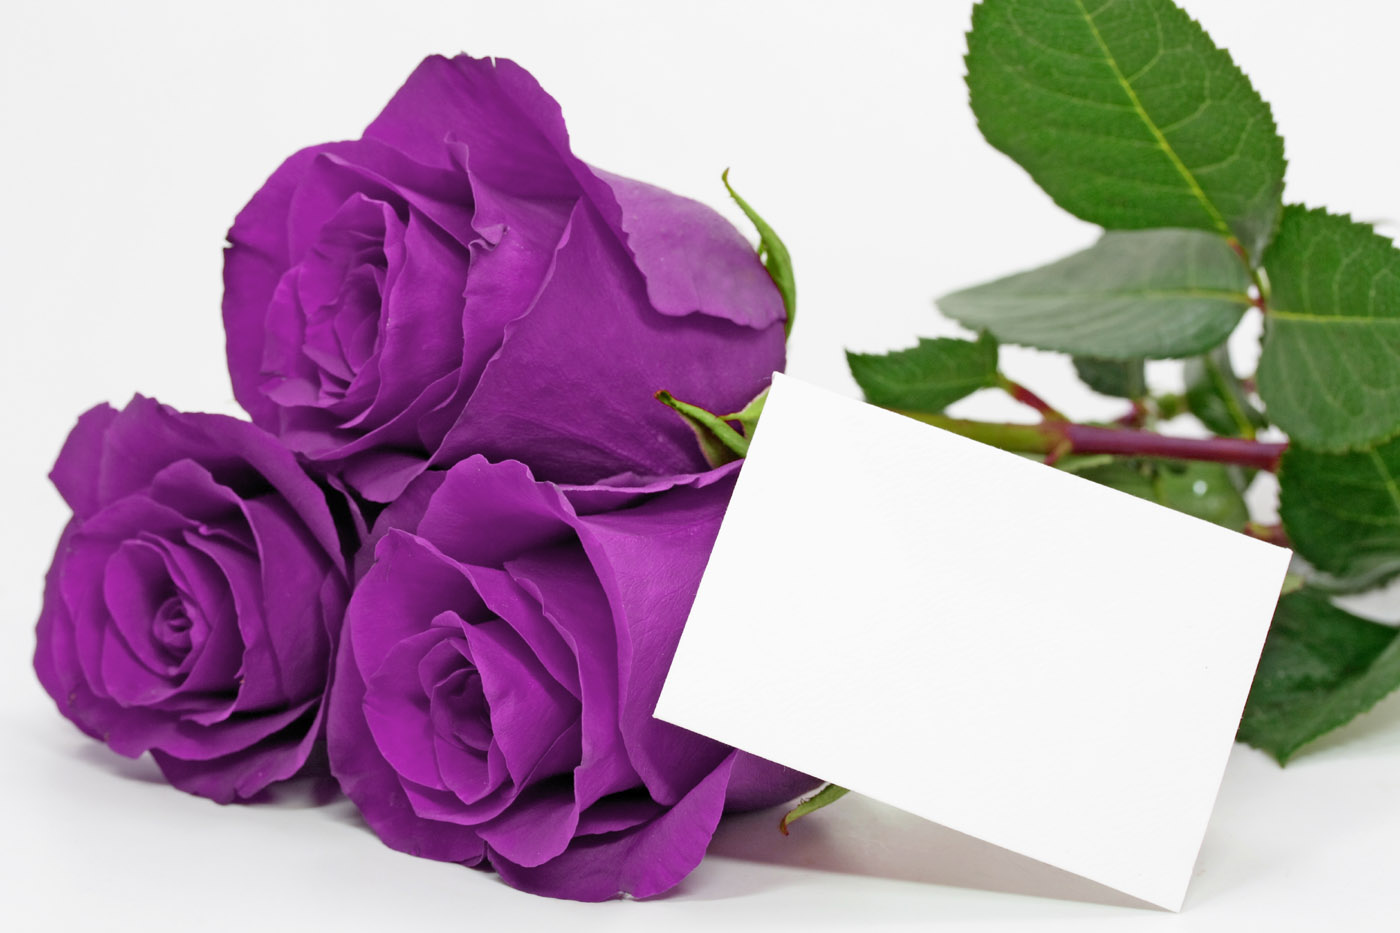 Purple images purple rose hd wallpaper and background photos 34727262 purple images purple rose hd wallpaper and background photos izmirmasajfo